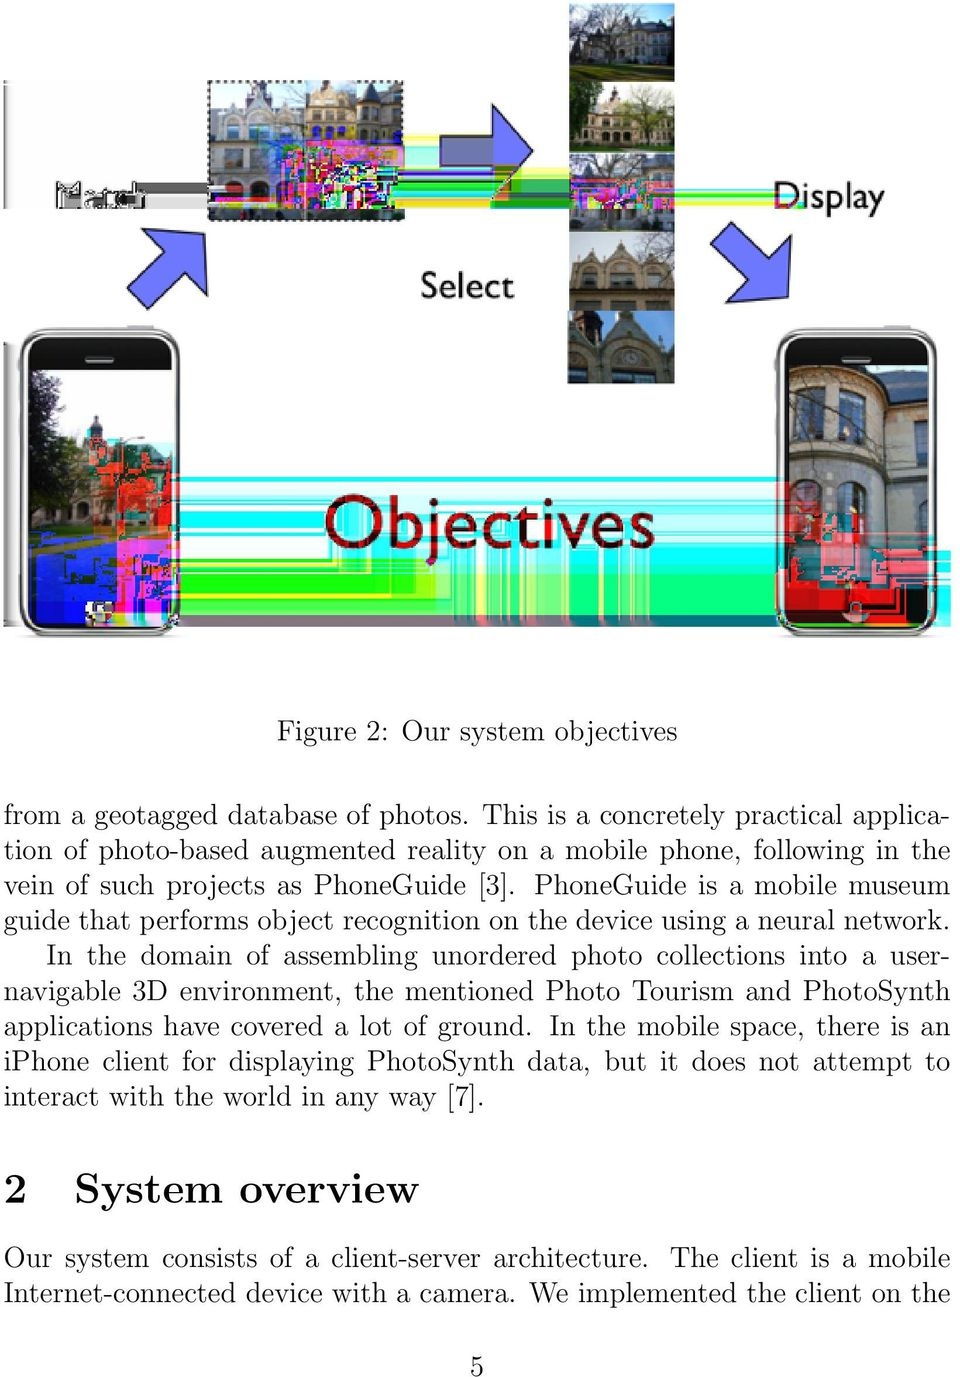 PhoneGuide is a mobile museum guide that performs object recognition on the device using a neural network.